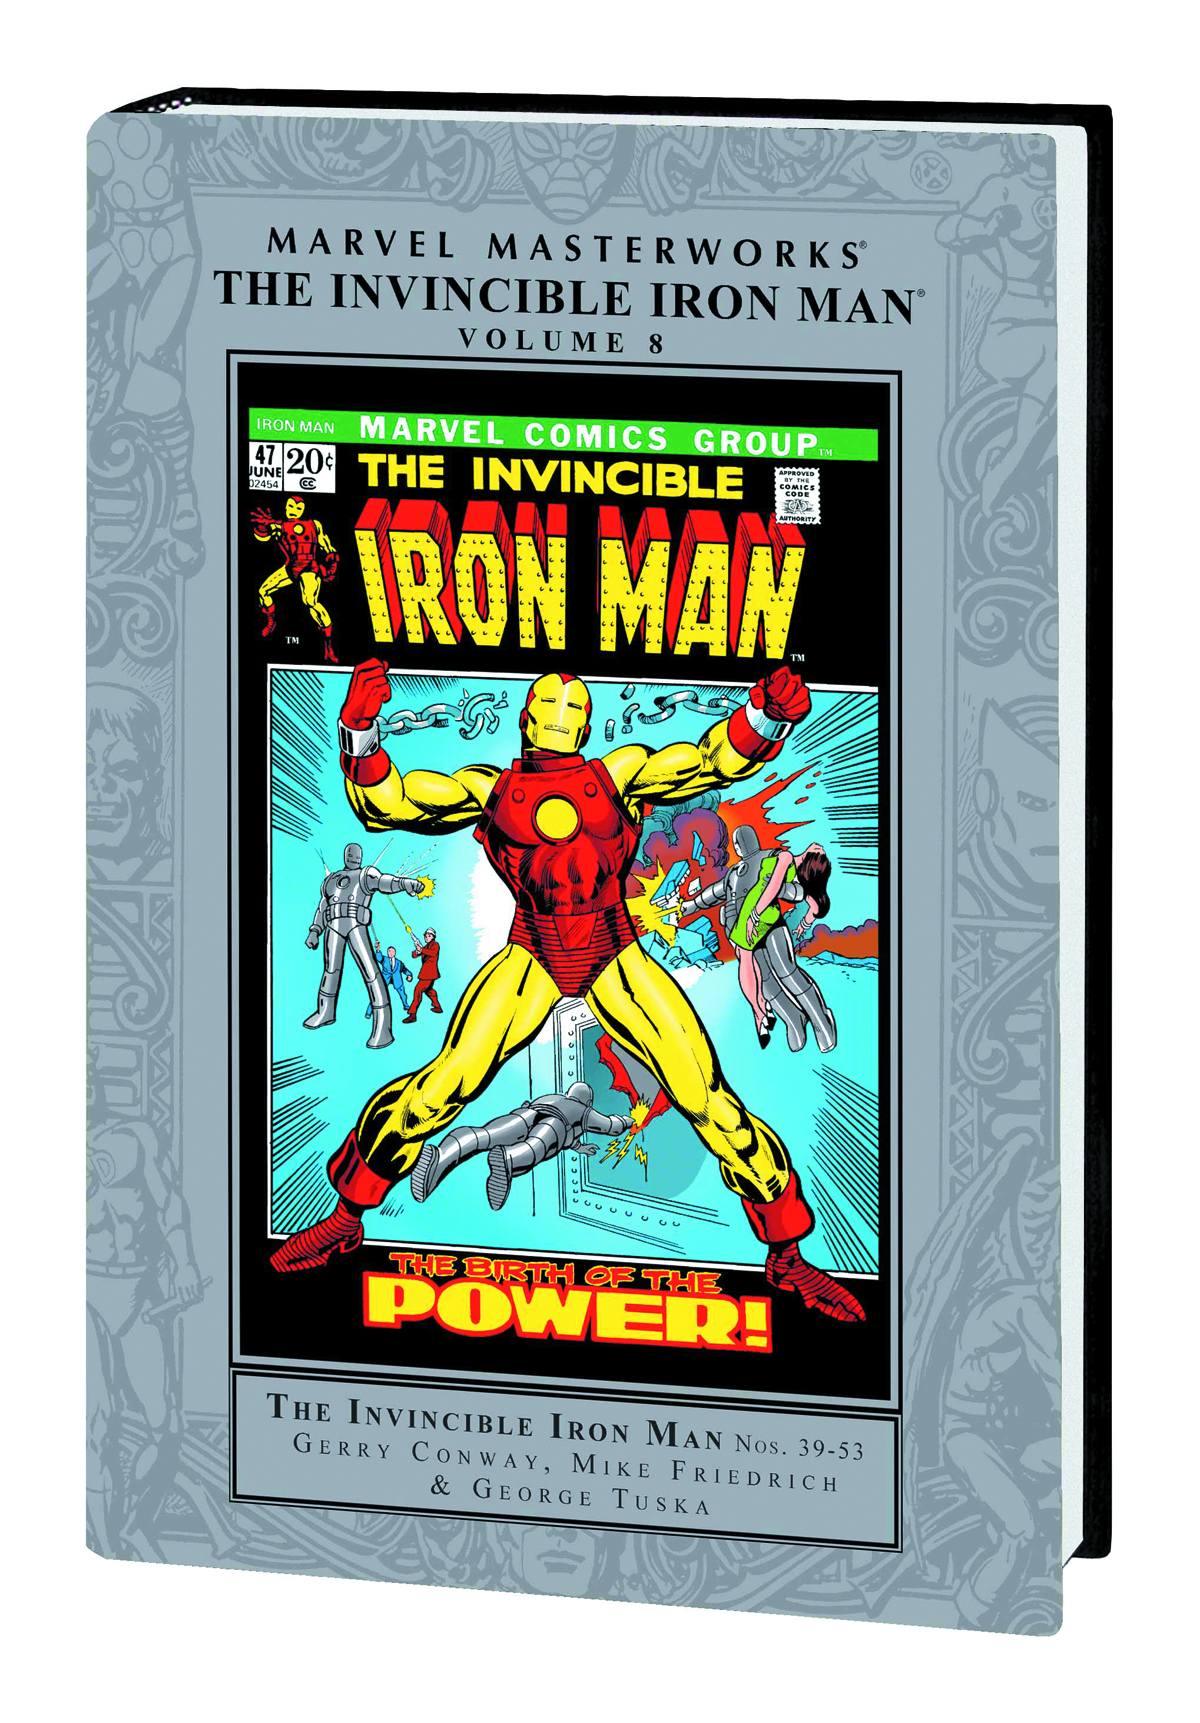 MMW INVINCIBLE IRON MAN HC VOL 08